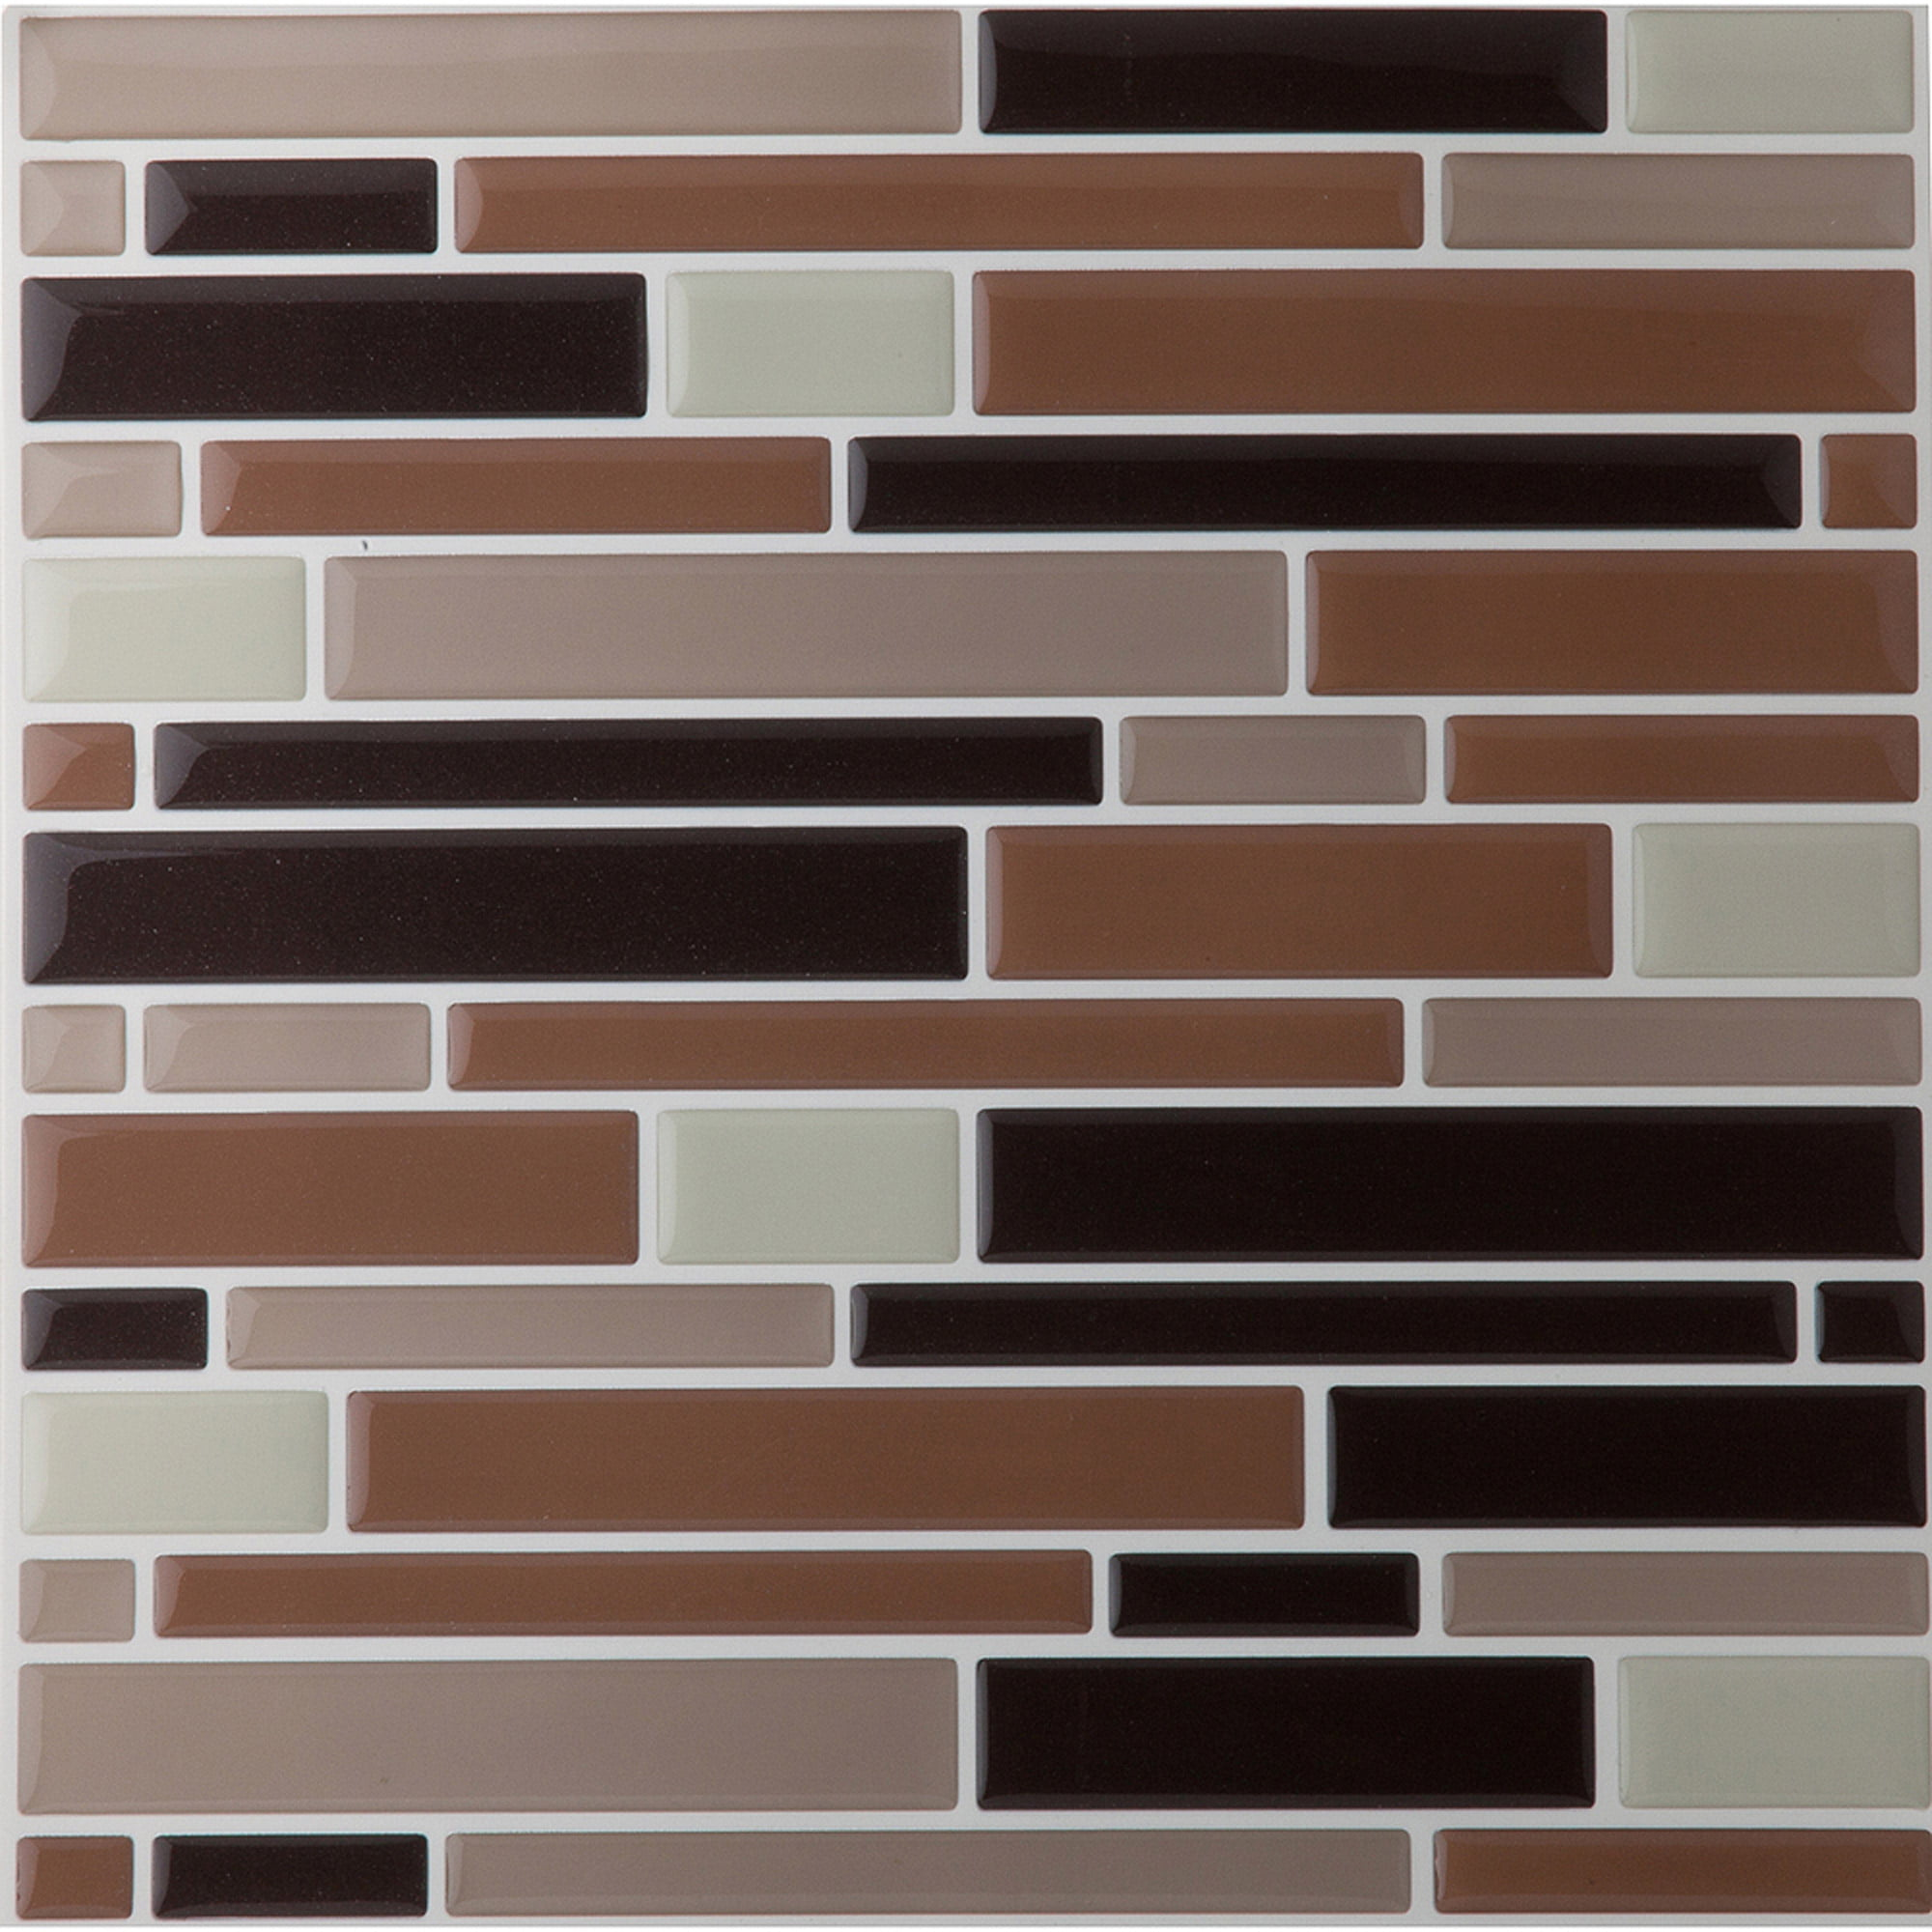 Magic Gel Beige 9.125x9.125 Self Adhesive Vinyl Wall Tile - 6 Tiles ...